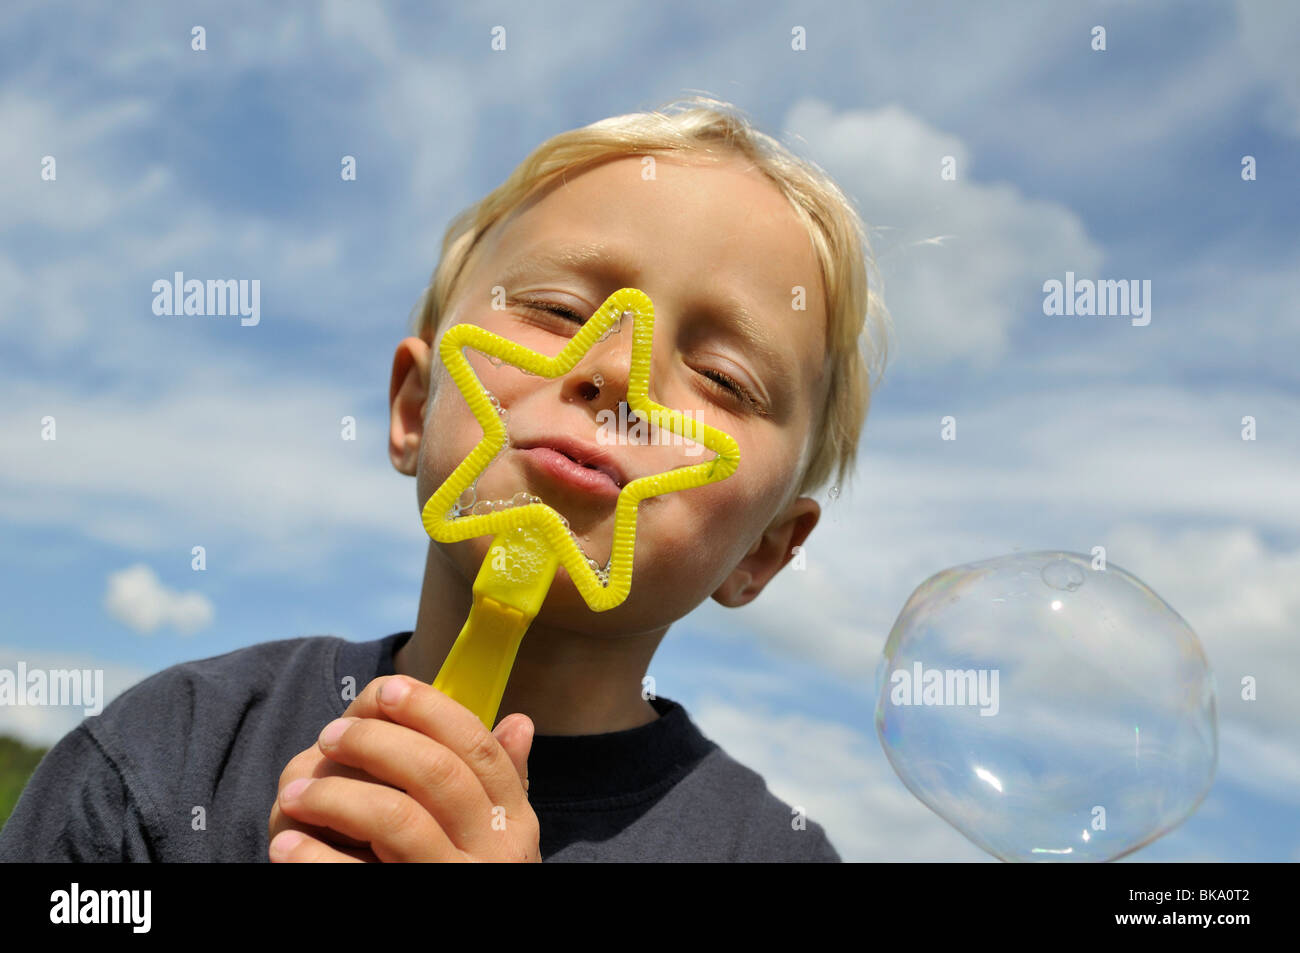 Boy blowing bubbles, Norrkoeping, Ostergotlands Lan, Sweden - Stock Image